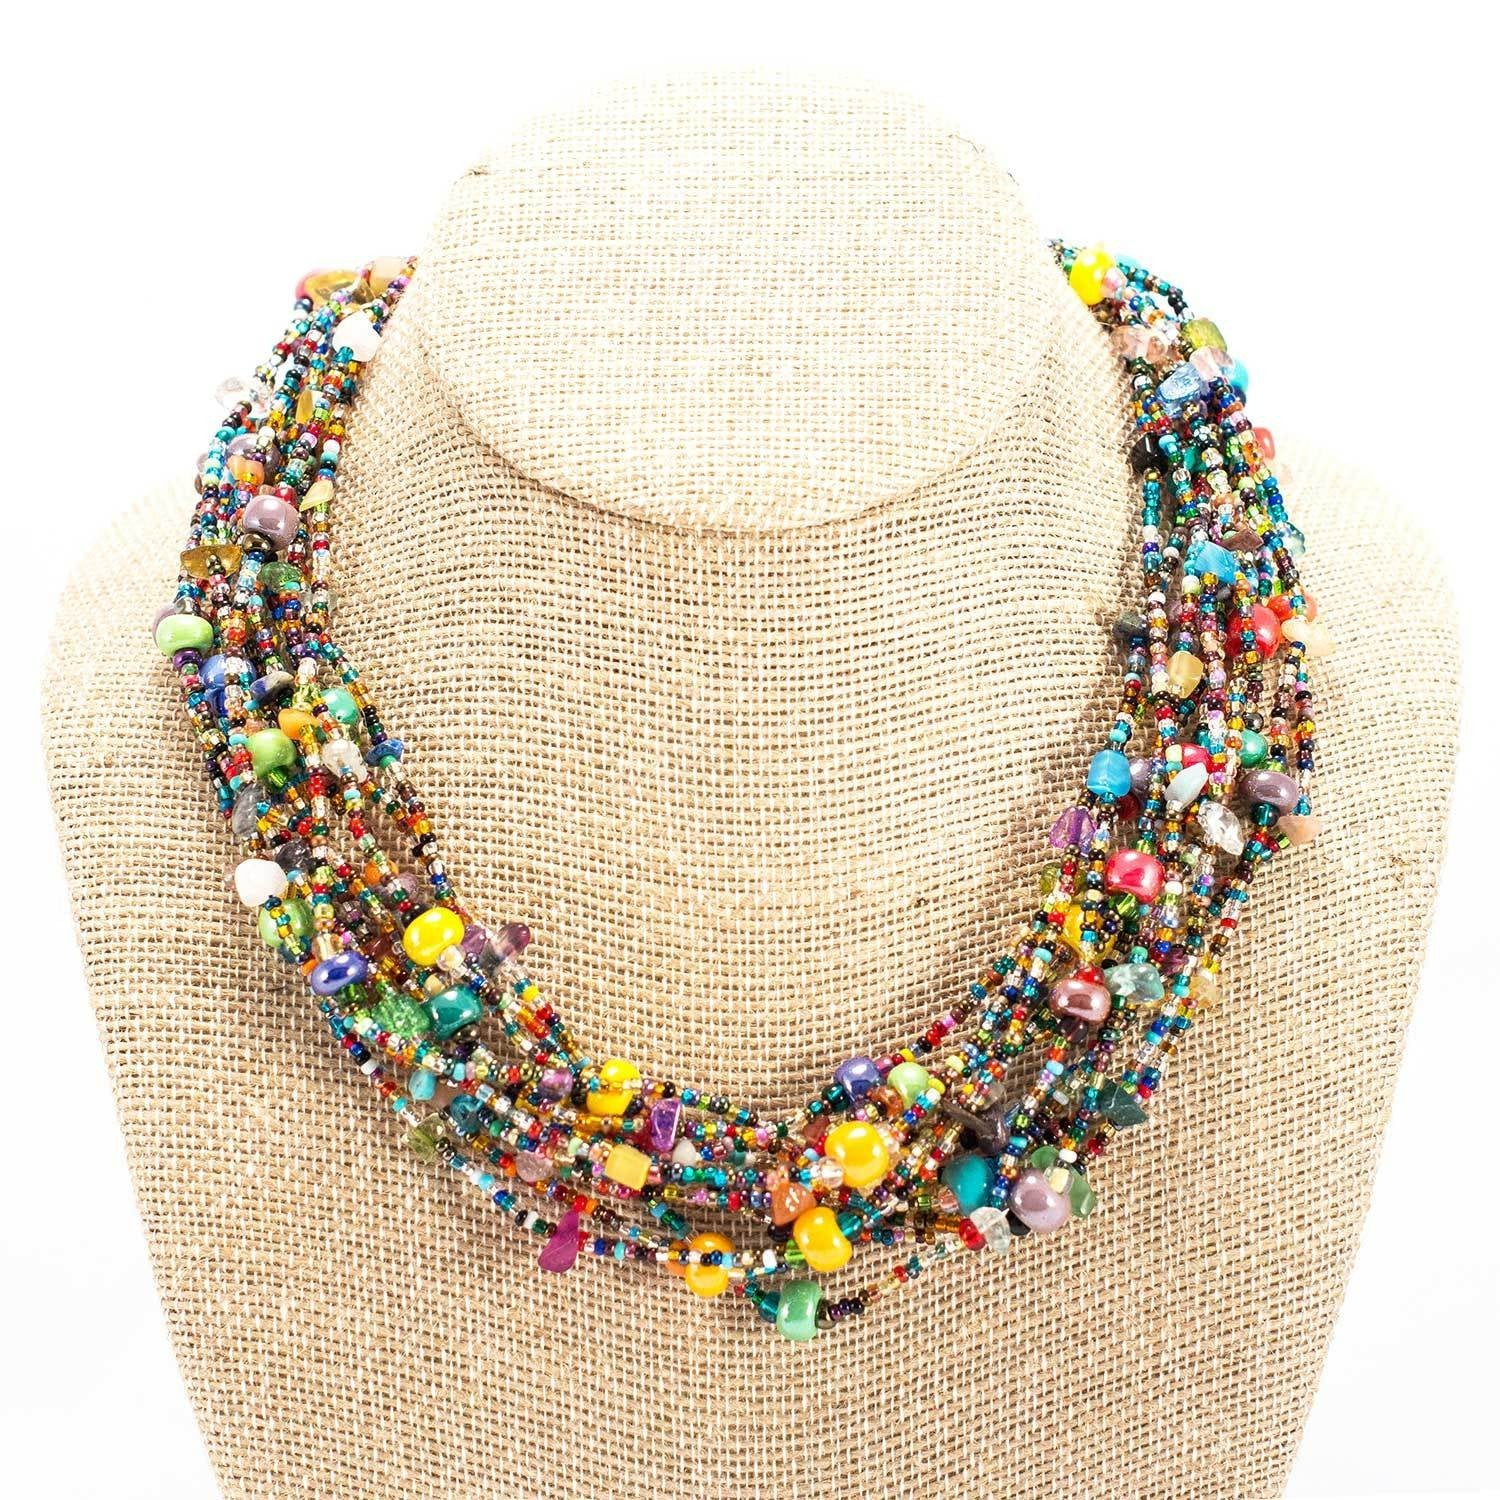 12 Strand Bead Beach Ball Necklace - Lucias Imports (J)